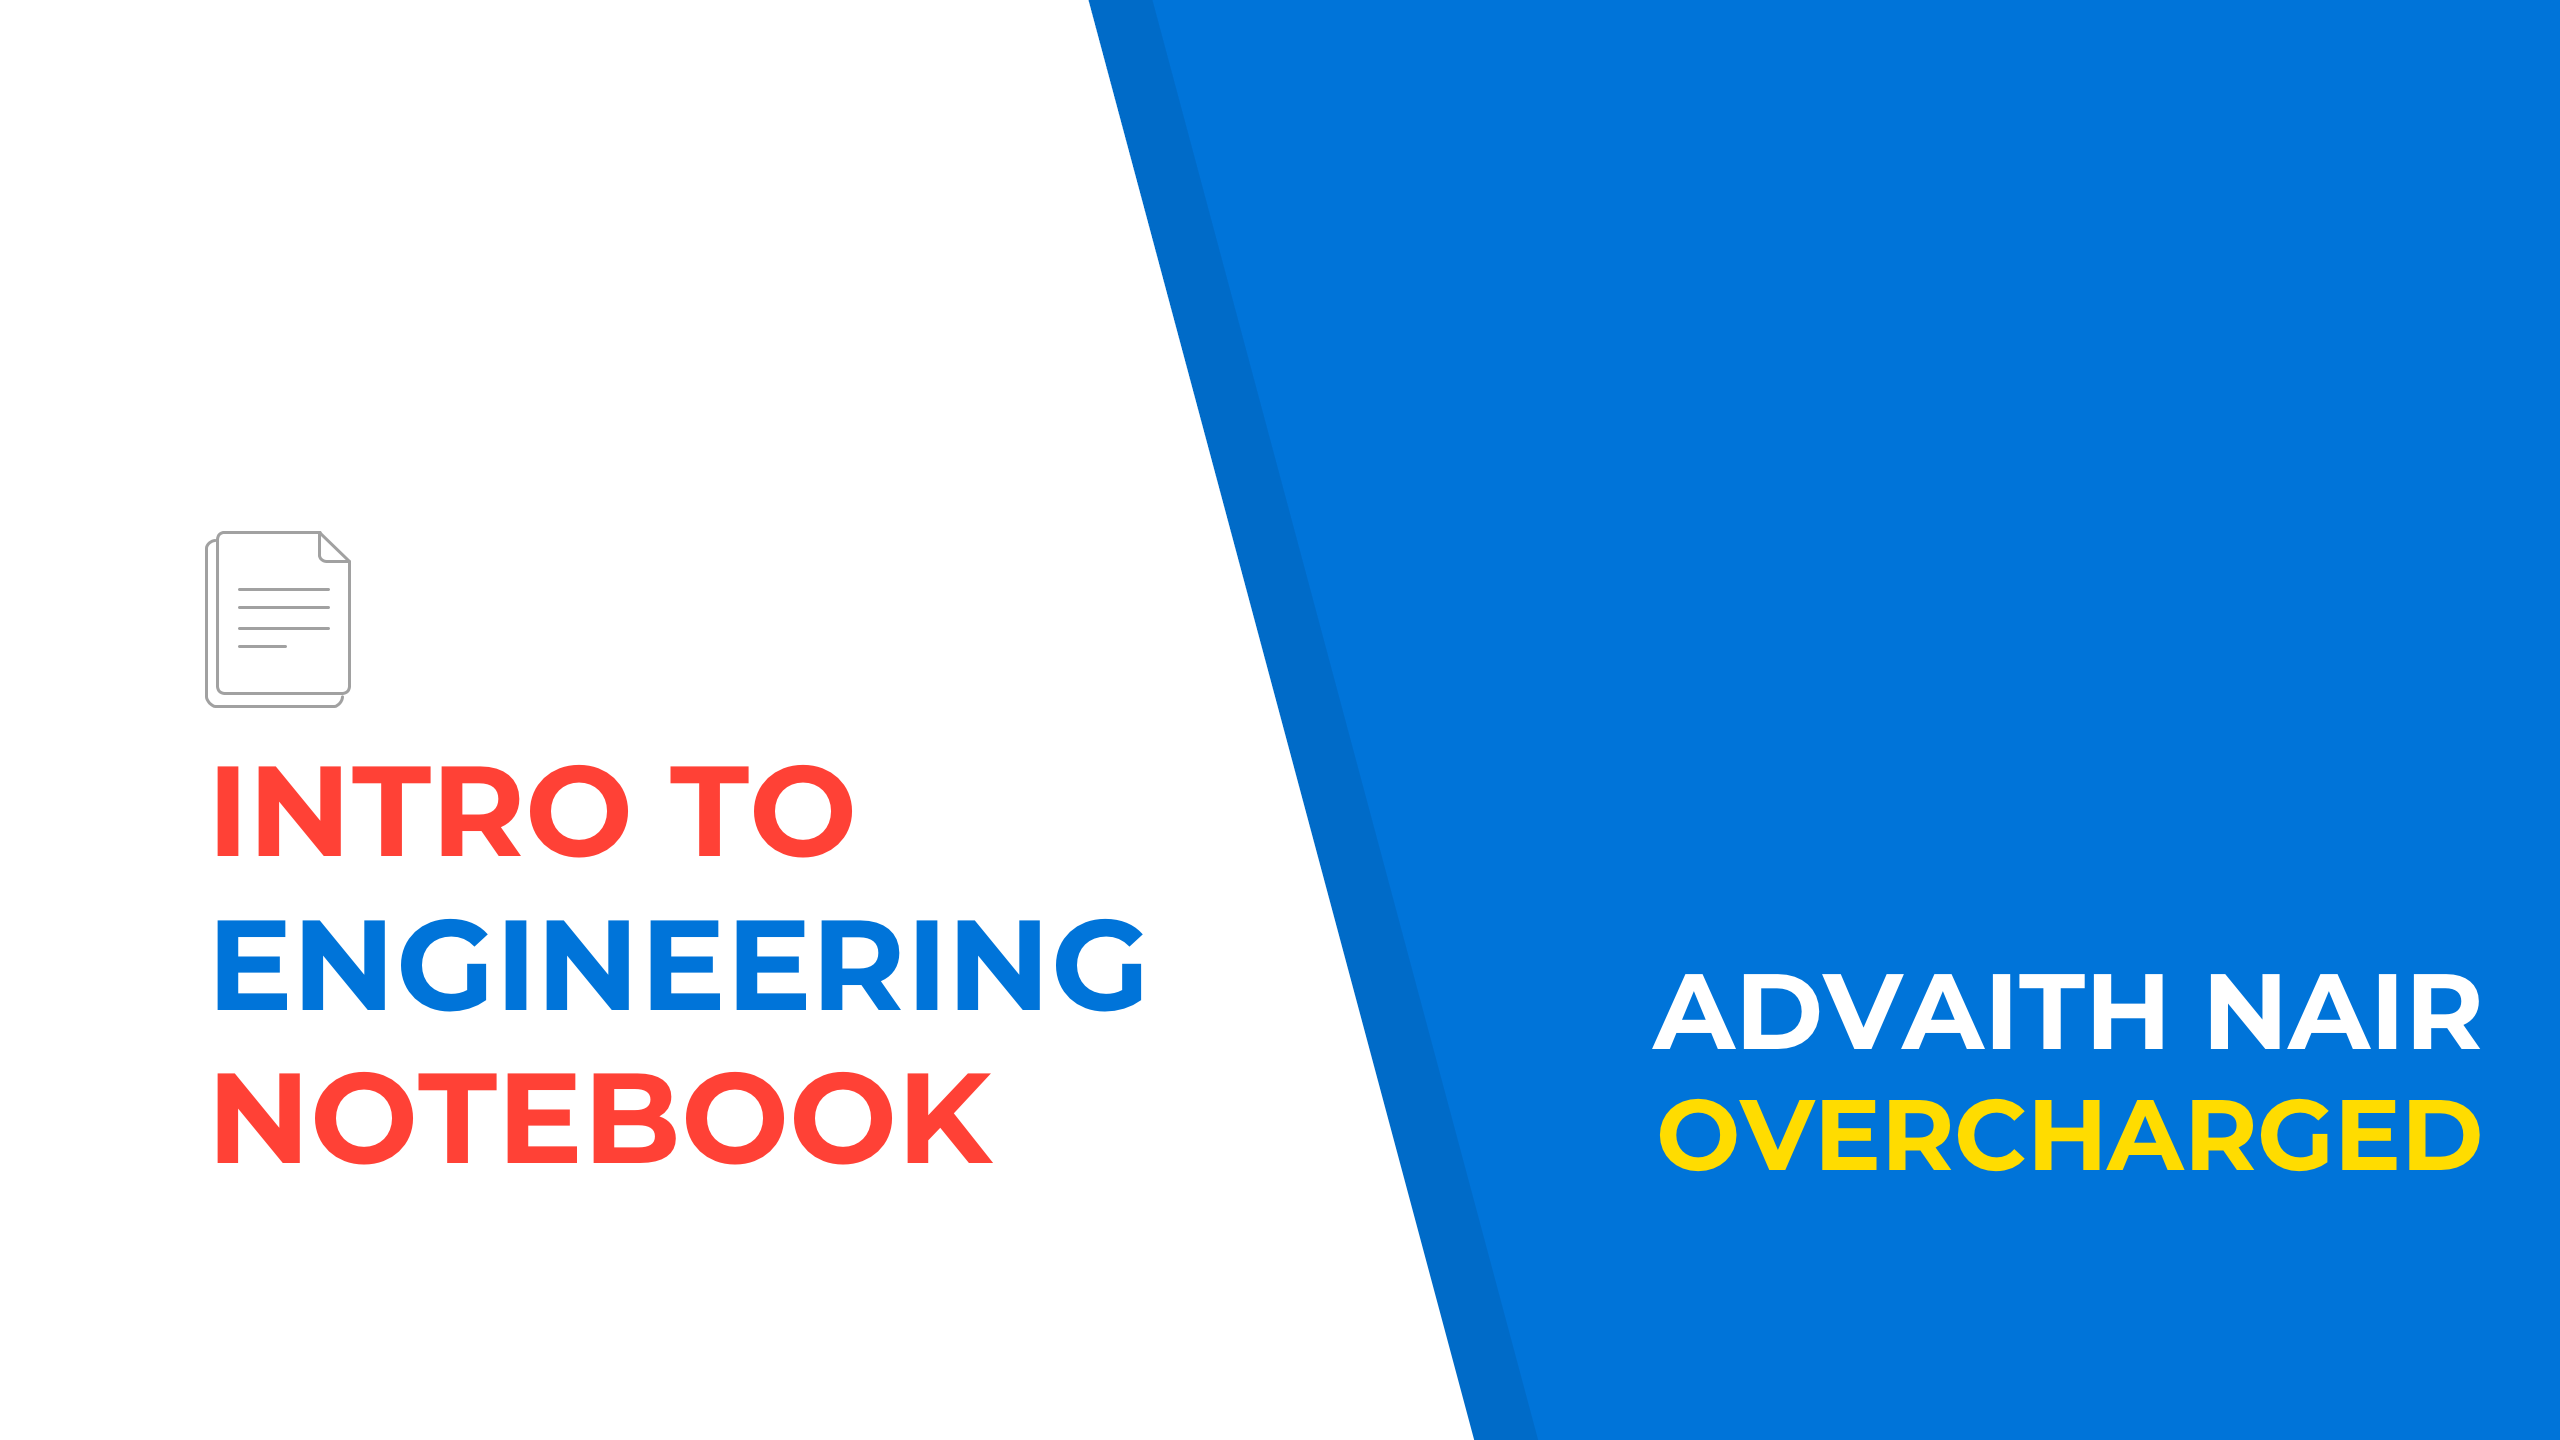 Intro to Engineering Notebook by Overcharged